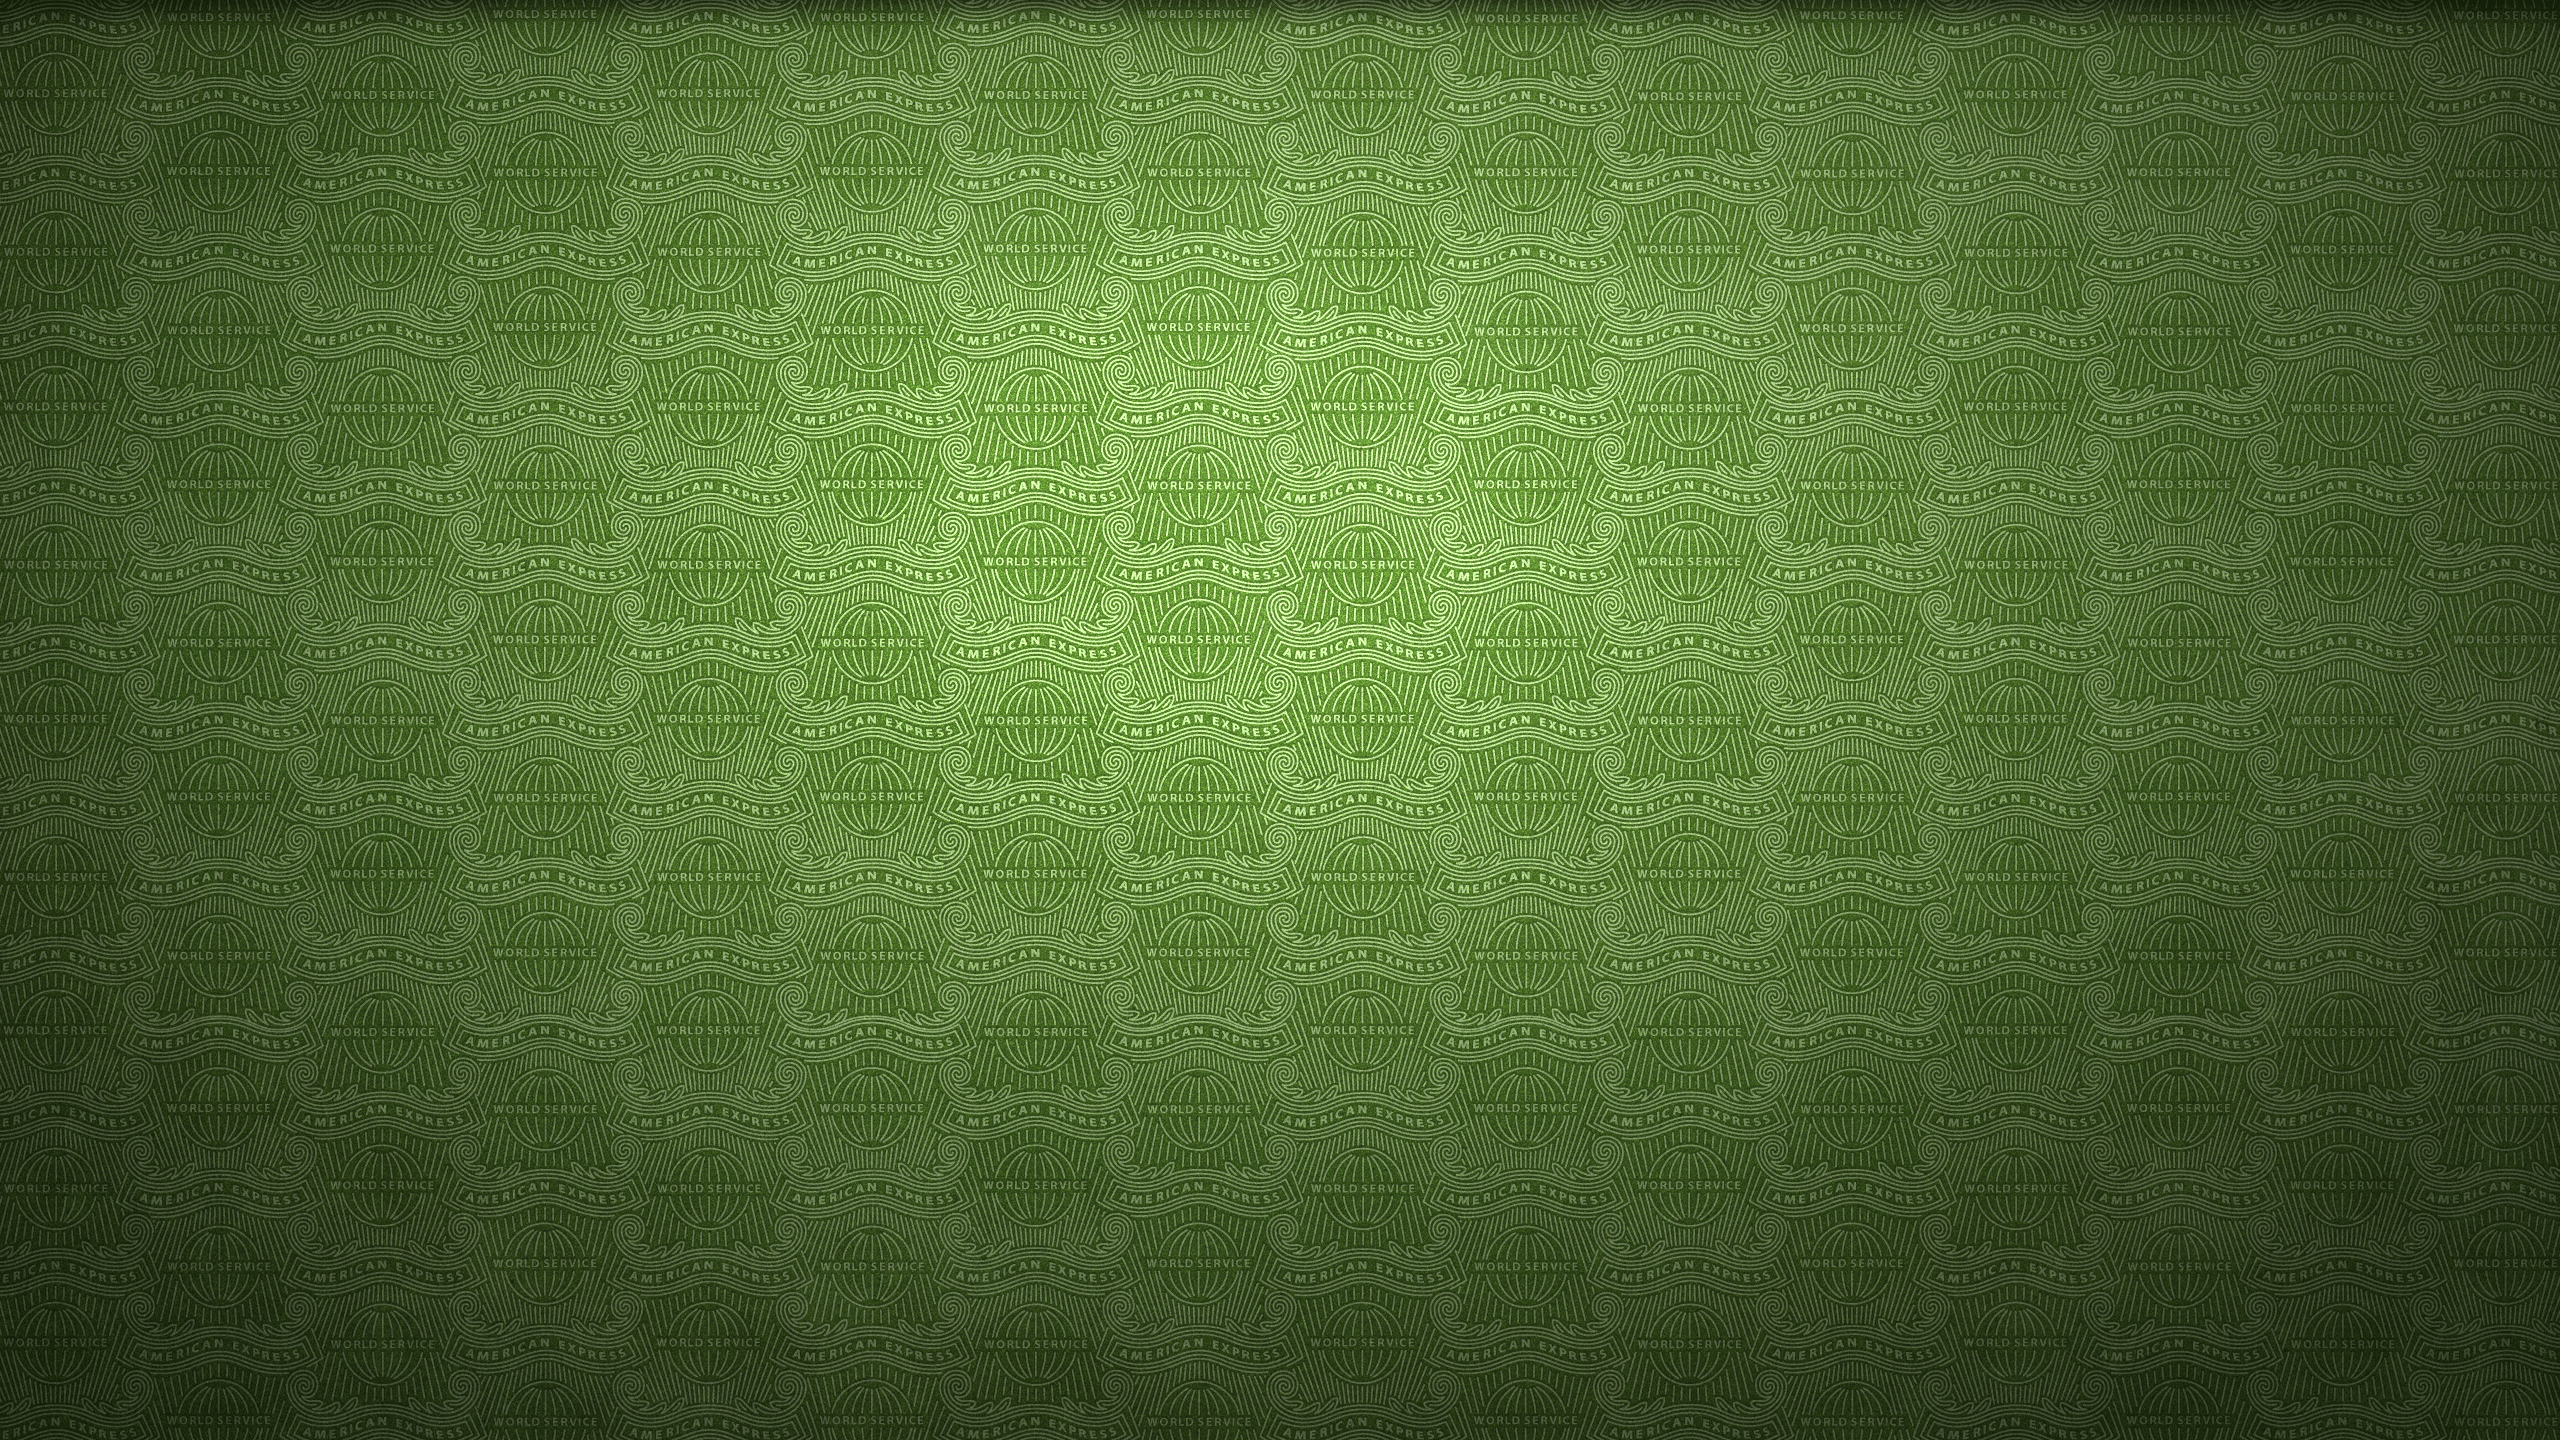 brad ellis american express wallpaper 27in imac png about 1 year ago ...